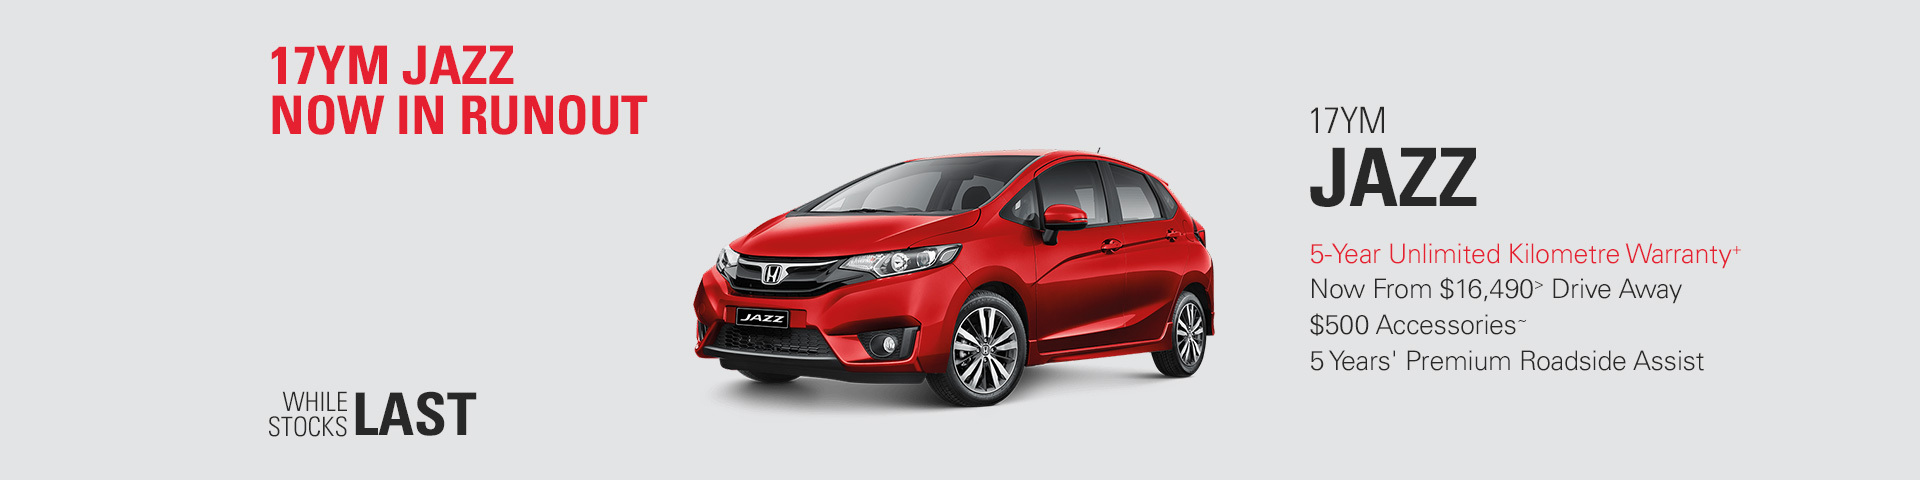 Honda - National Offer - 17 YM Jazz Now In Runout